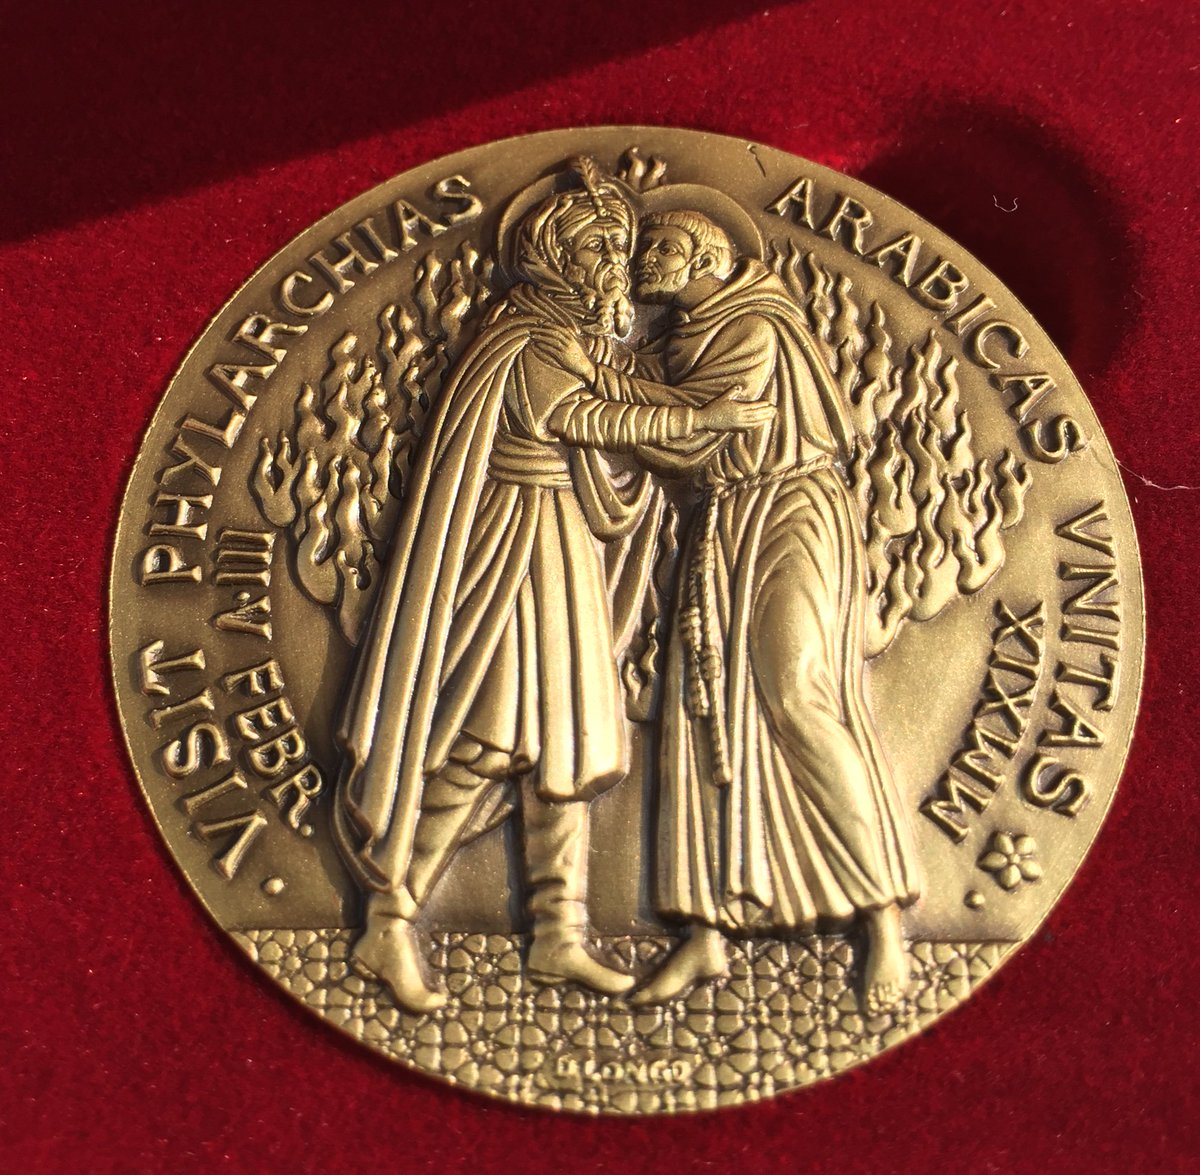 The medal commemorating #PopeFrancisInUAE depicts St. Francis of Assisi meeting Sultan al-Malik al-Kamil 800 years ago. Today the pope said he thought providence wanted a pope named Francis to make the historic visit to Abu Dhabi. @ofmdotorg @ofmcapdotorg<br>http://pic.twitter.com/J4wvUbfOoJ